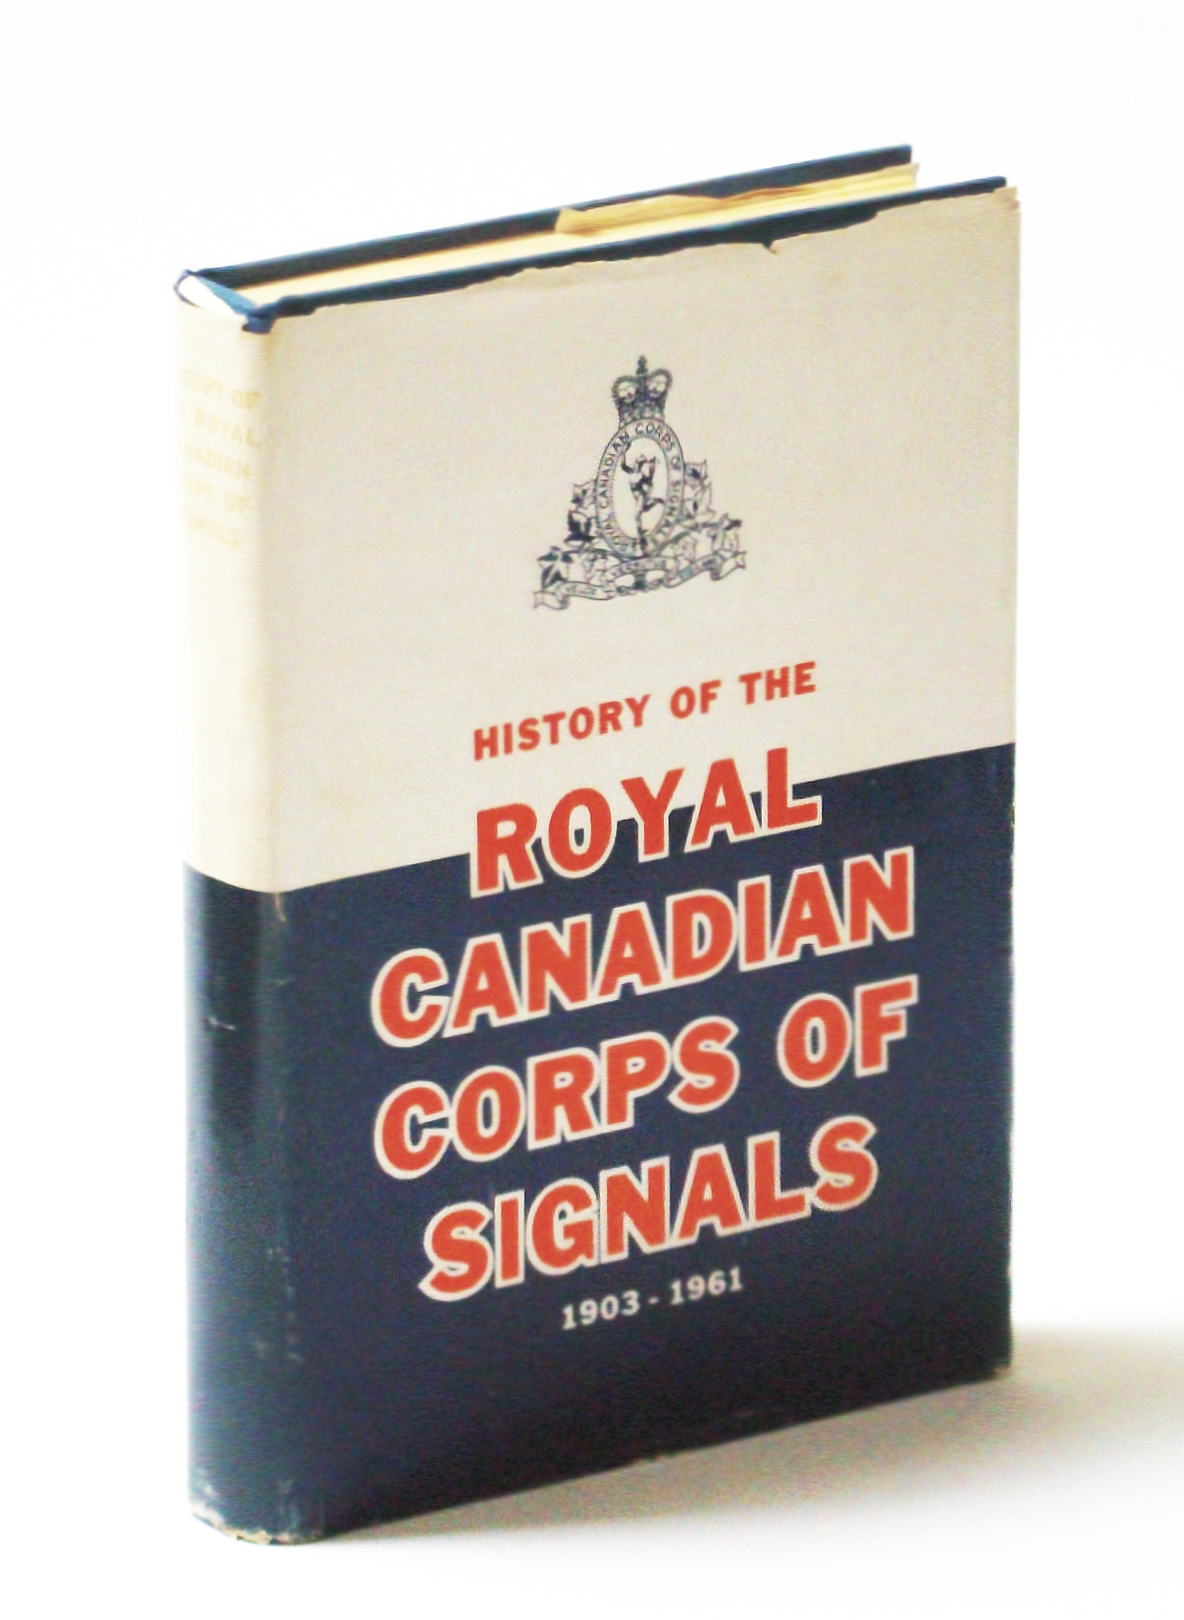 History of the Royal Canadian Corps of Signals 1906 - 1961